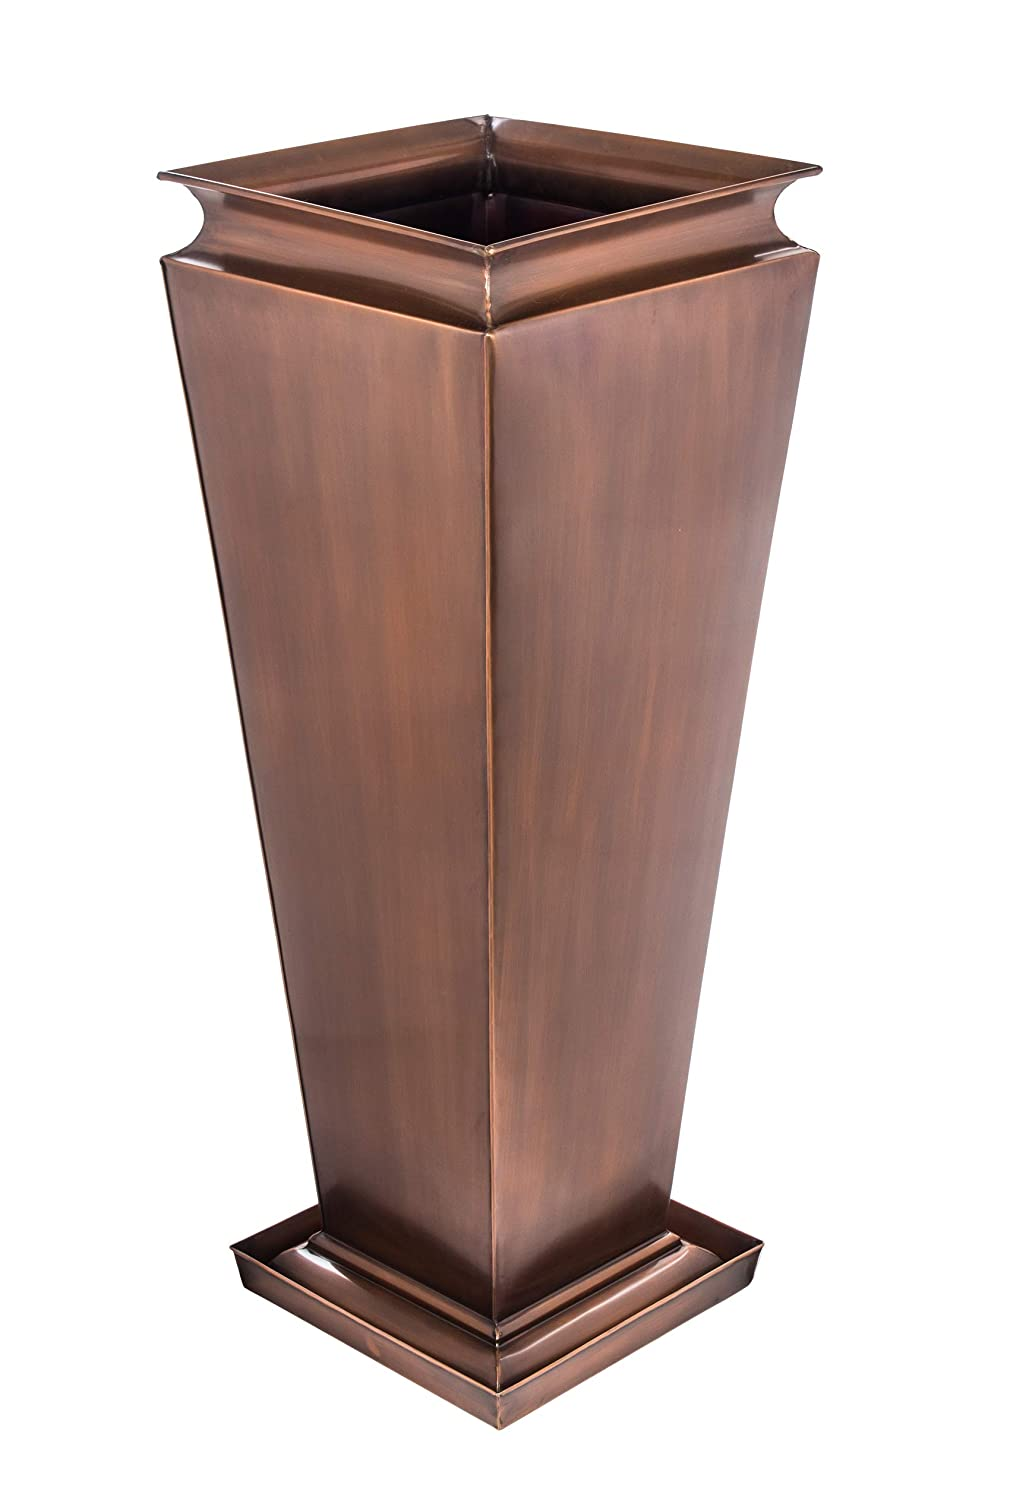 H Potter Tall Planter Patio Garden Copper Indoor Outdoor Deck Flower with Tray